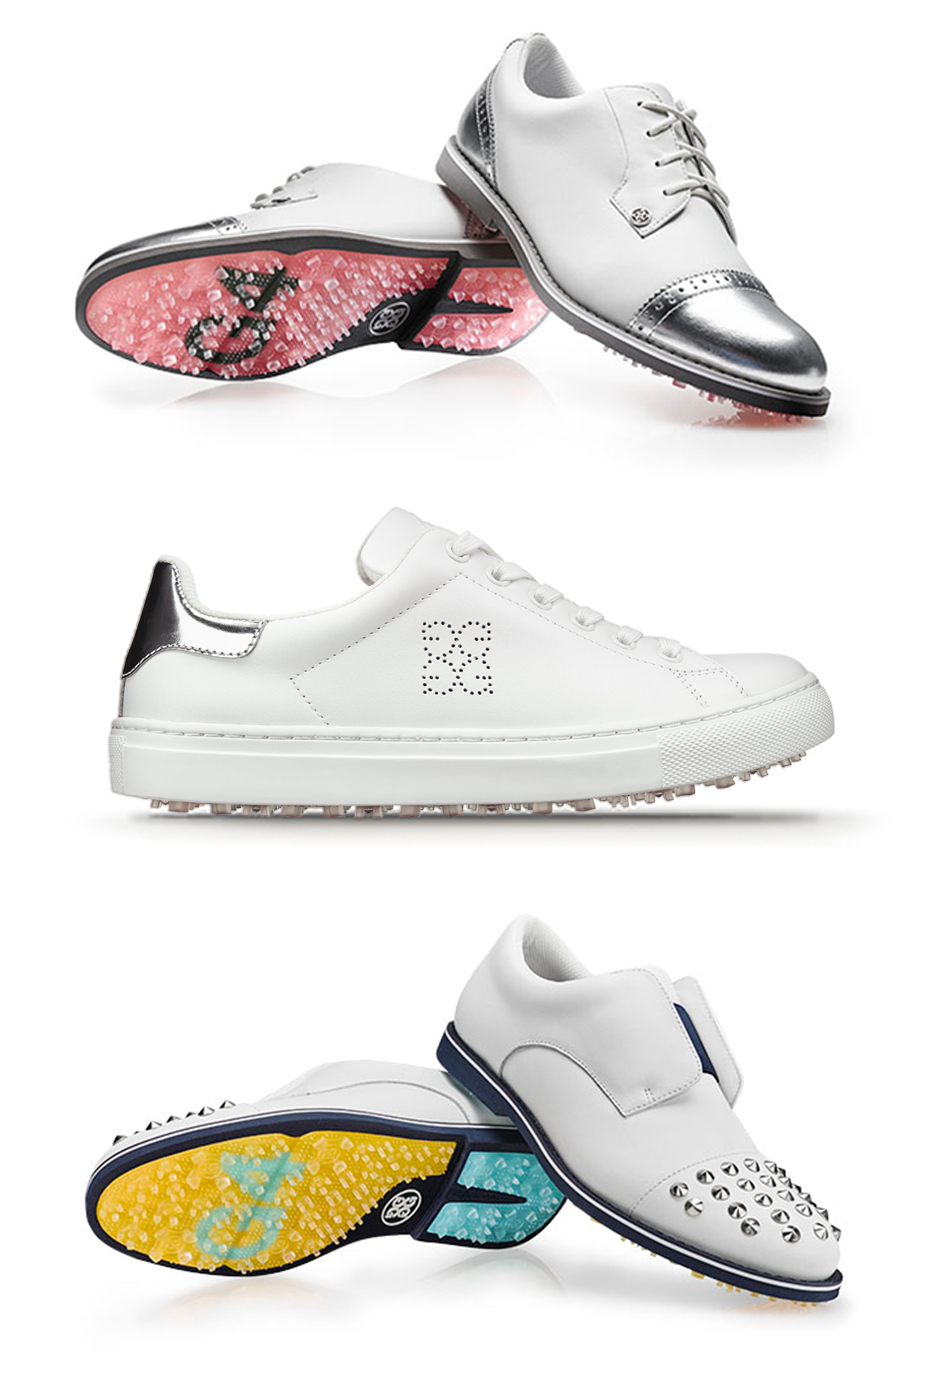 G/FORE introduce new Spring Summer 2019 collection